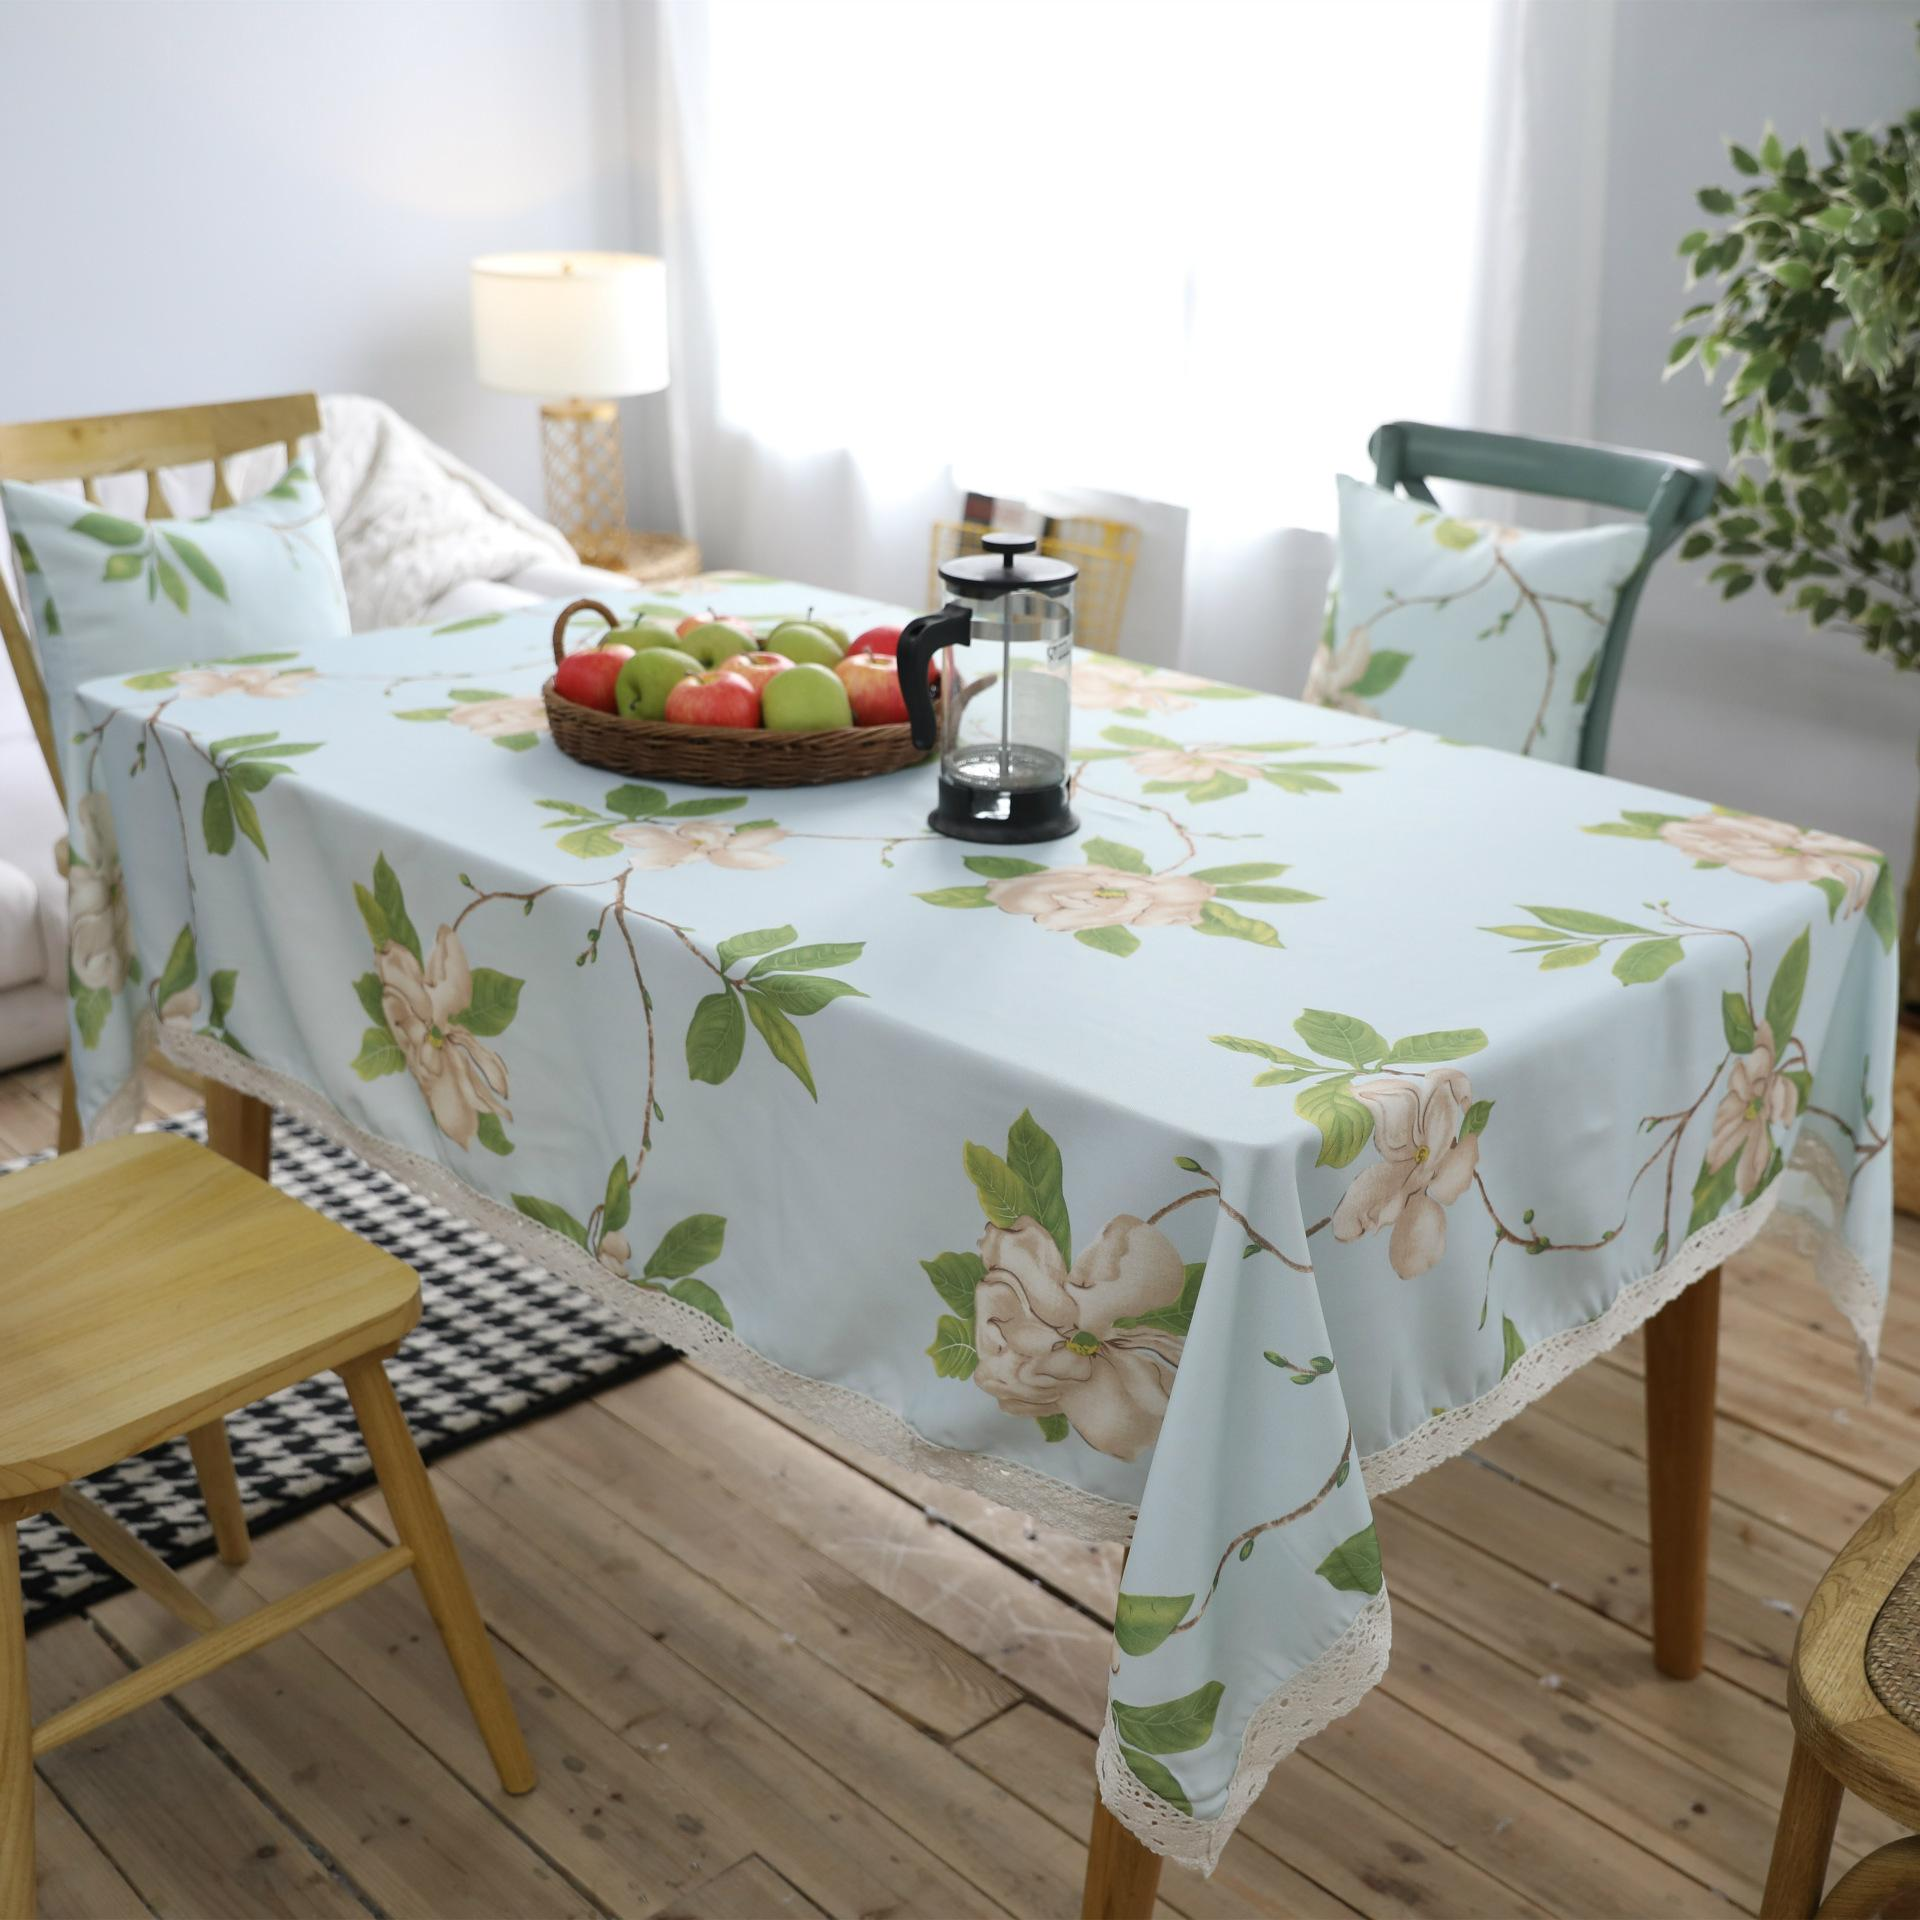 Ordinaire Helloyoung Floral Pattern Decorative Lace Table Cloth Polyester Tablecloth  Dining Table Cover For Kitchen Home Decor U1258 Plastic Tablecloths Lace ...